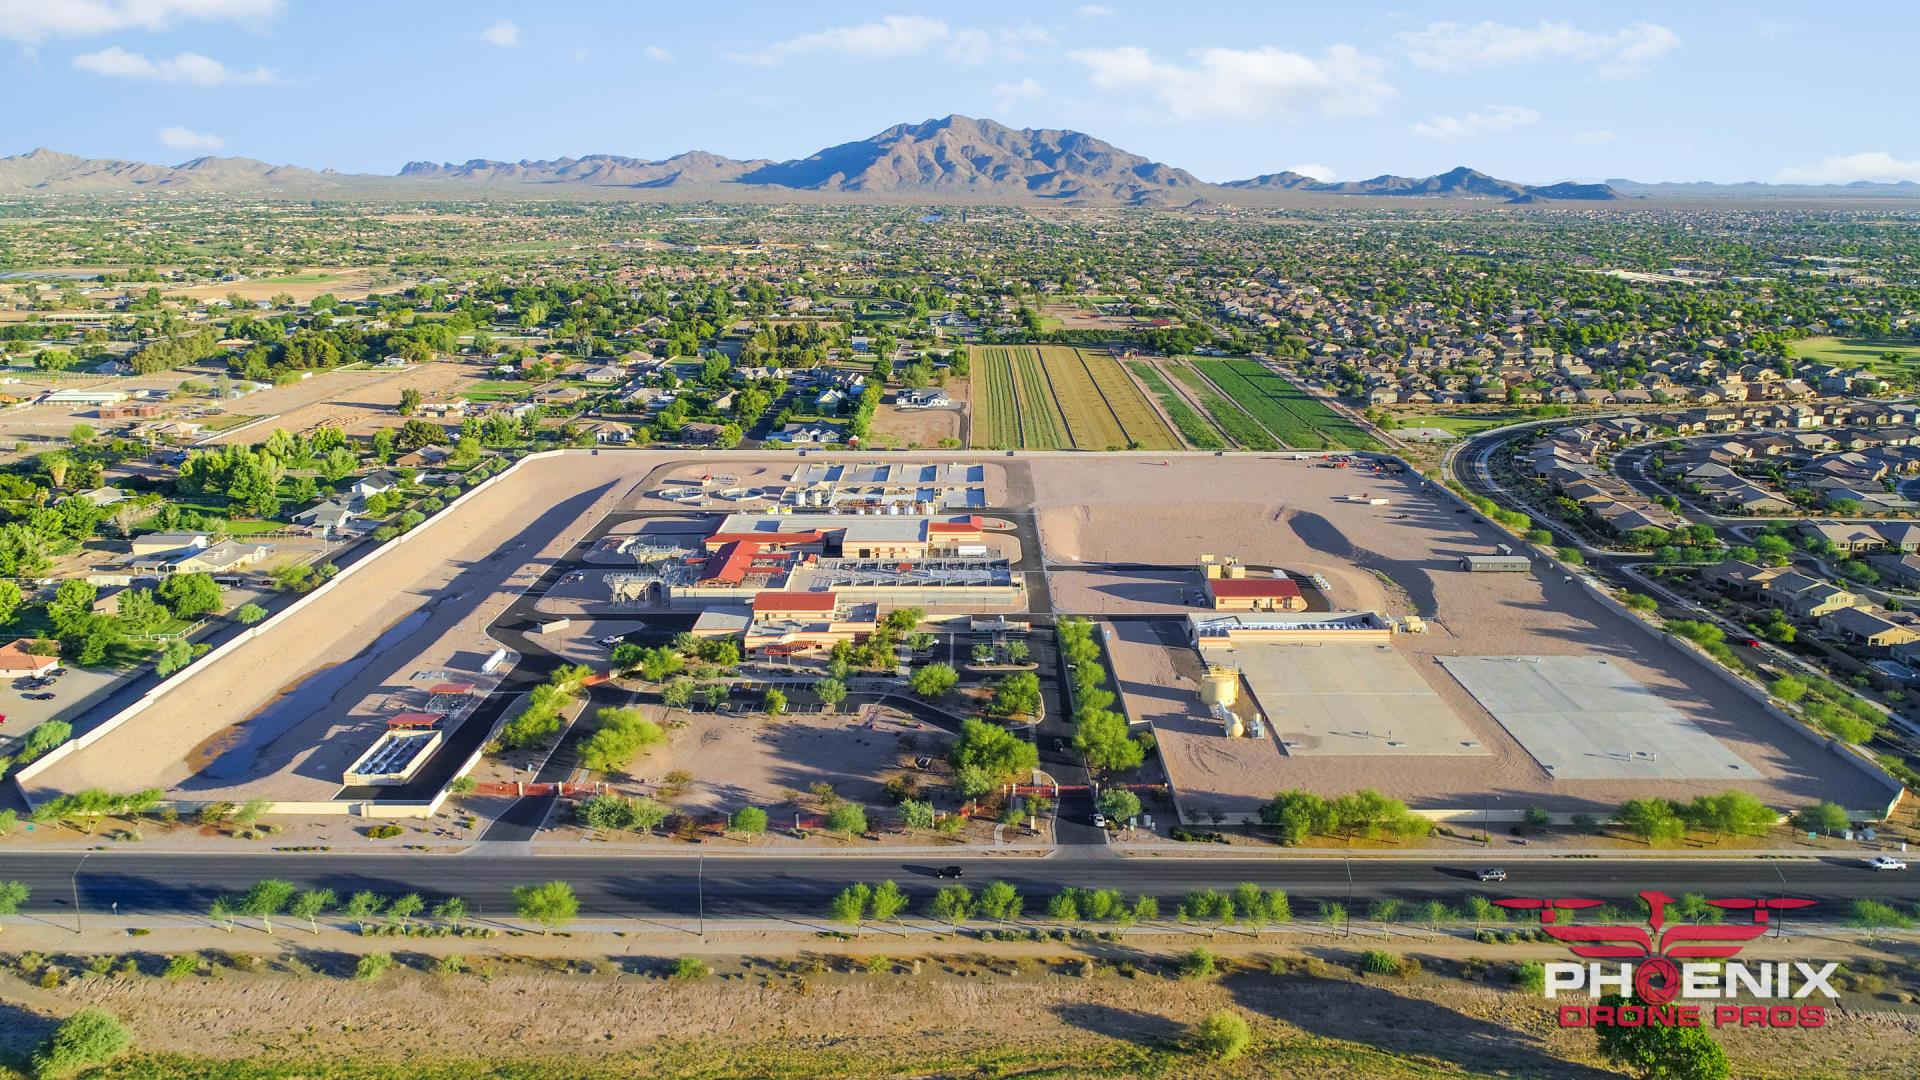 Santan Vista Water Treatment Plan Aerial Photo